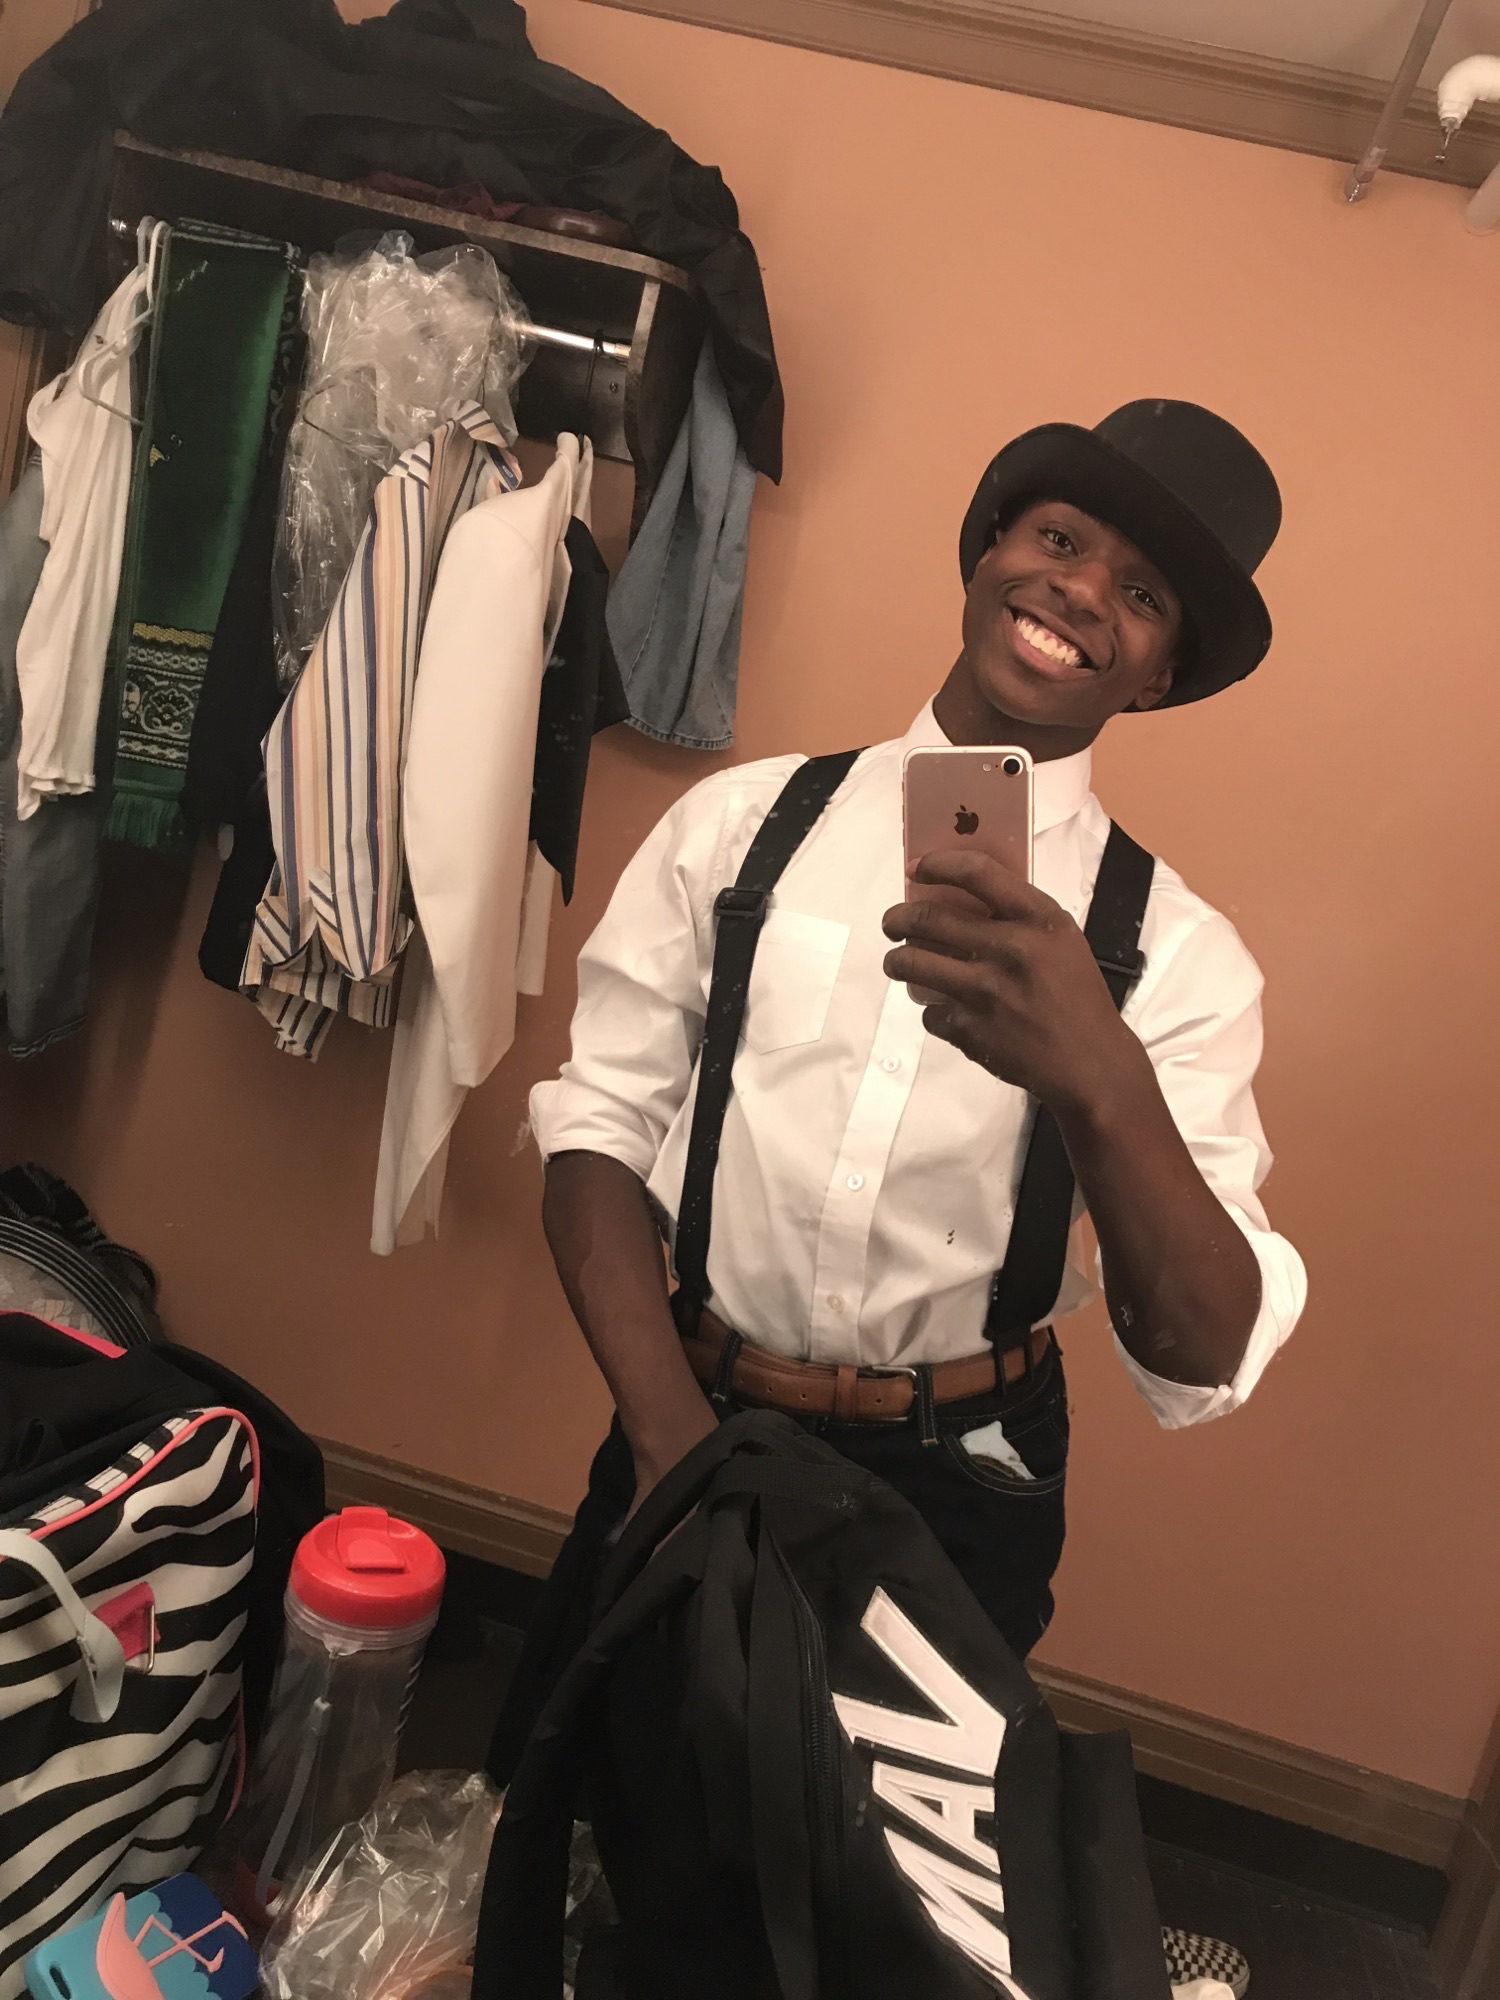 A young man in a white shirt with a black bowler hat and suspenders taking a selfie in a mirror.